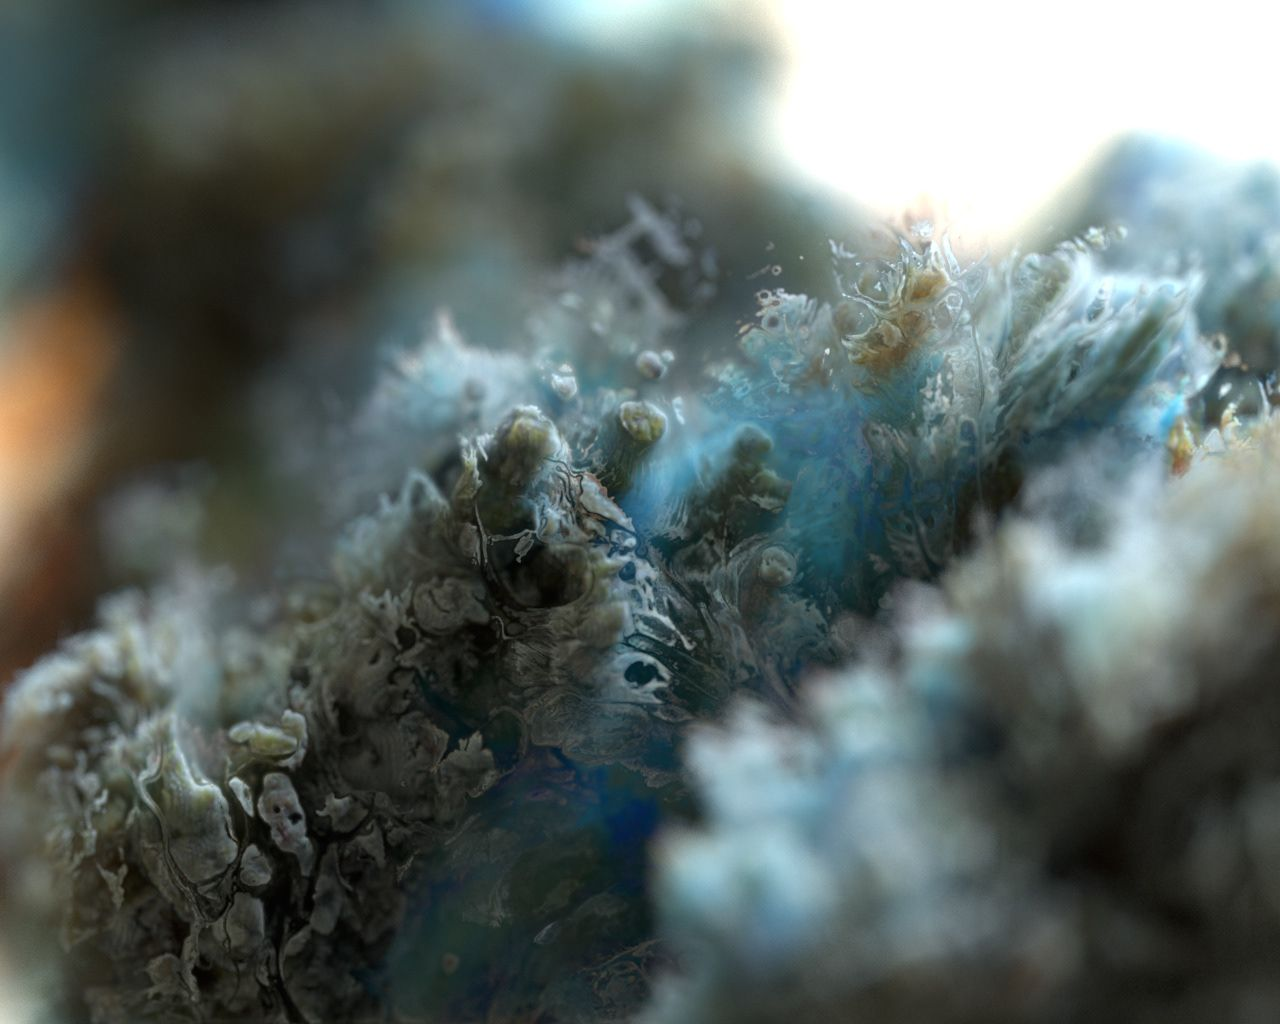 Lee Griggs Volume Displacement Open image, Abstract